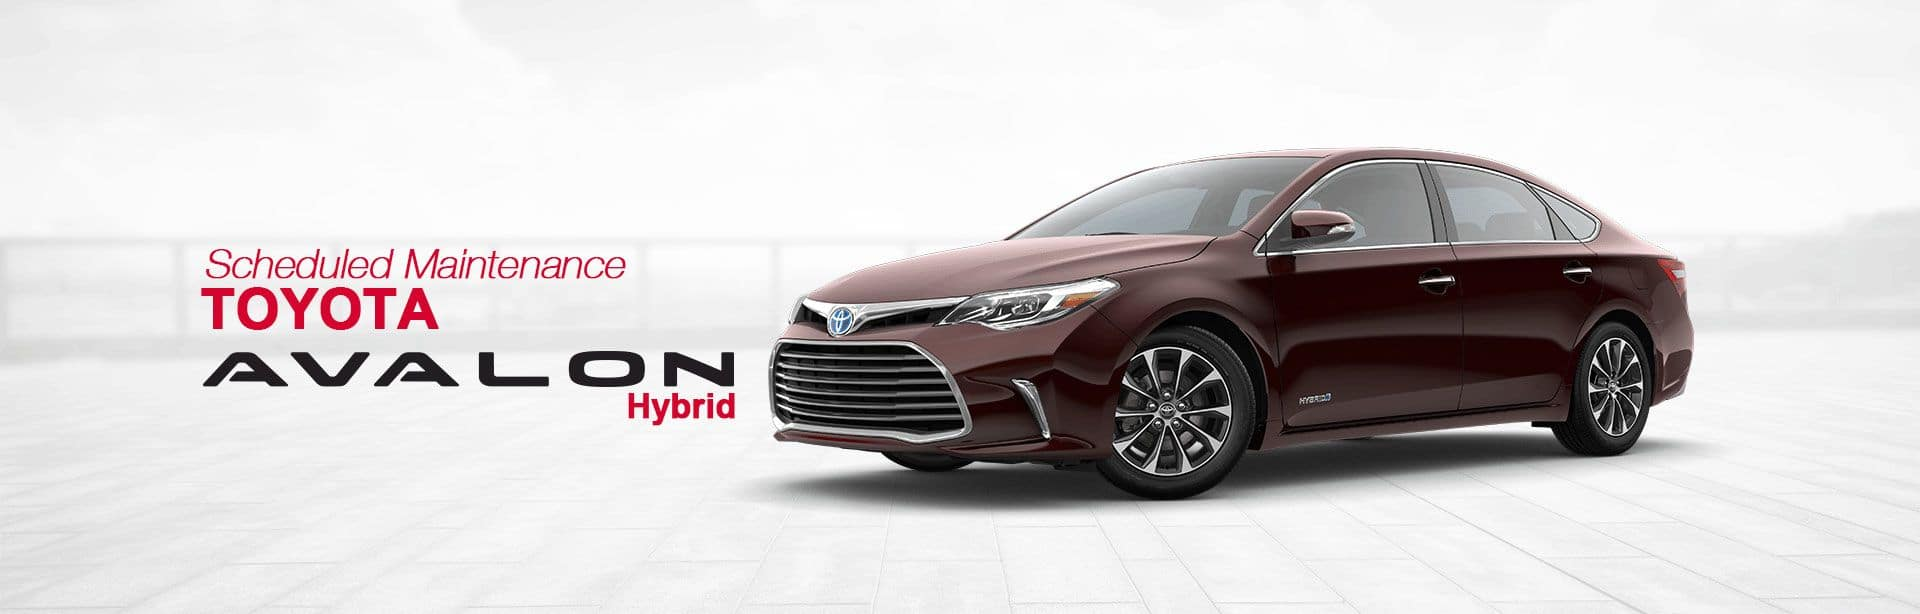 toyota avalon hybrid xle premium review webcarz